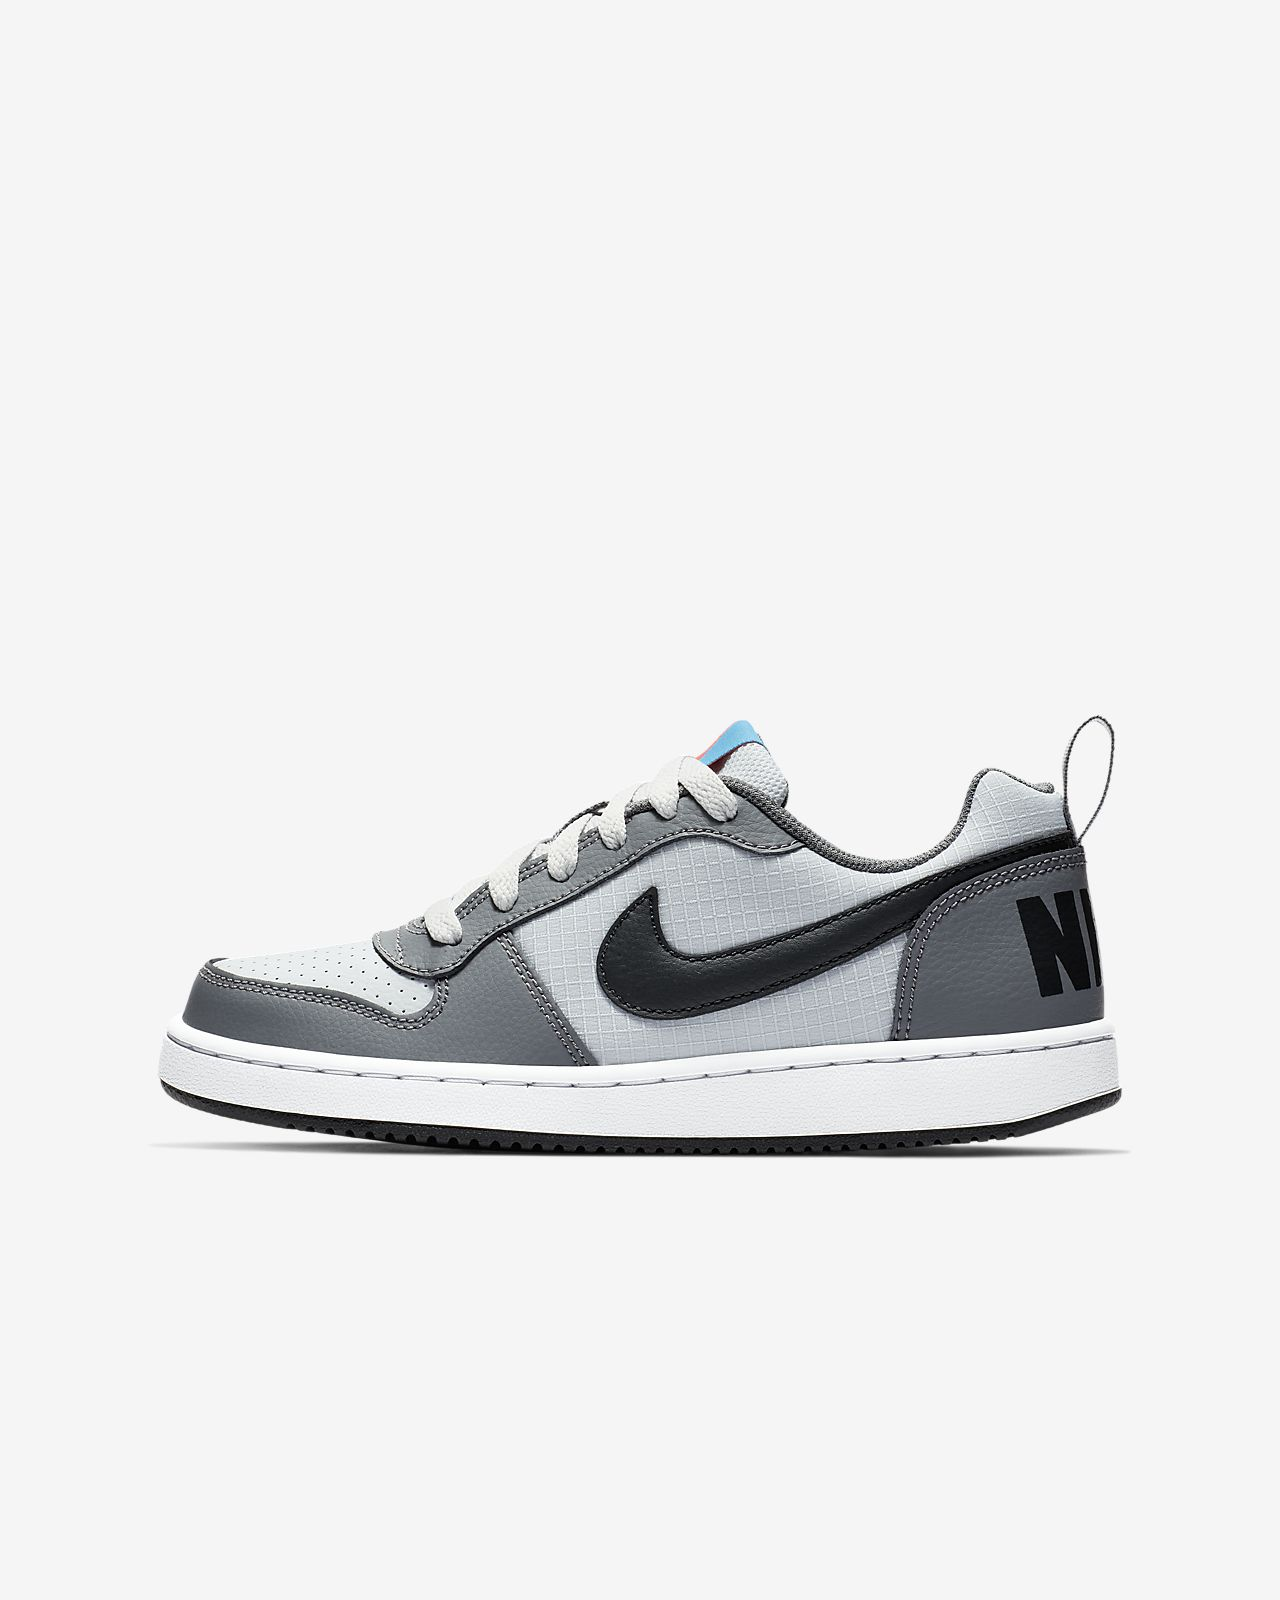 NikeCourt Borough Low Older Kids' Shoe